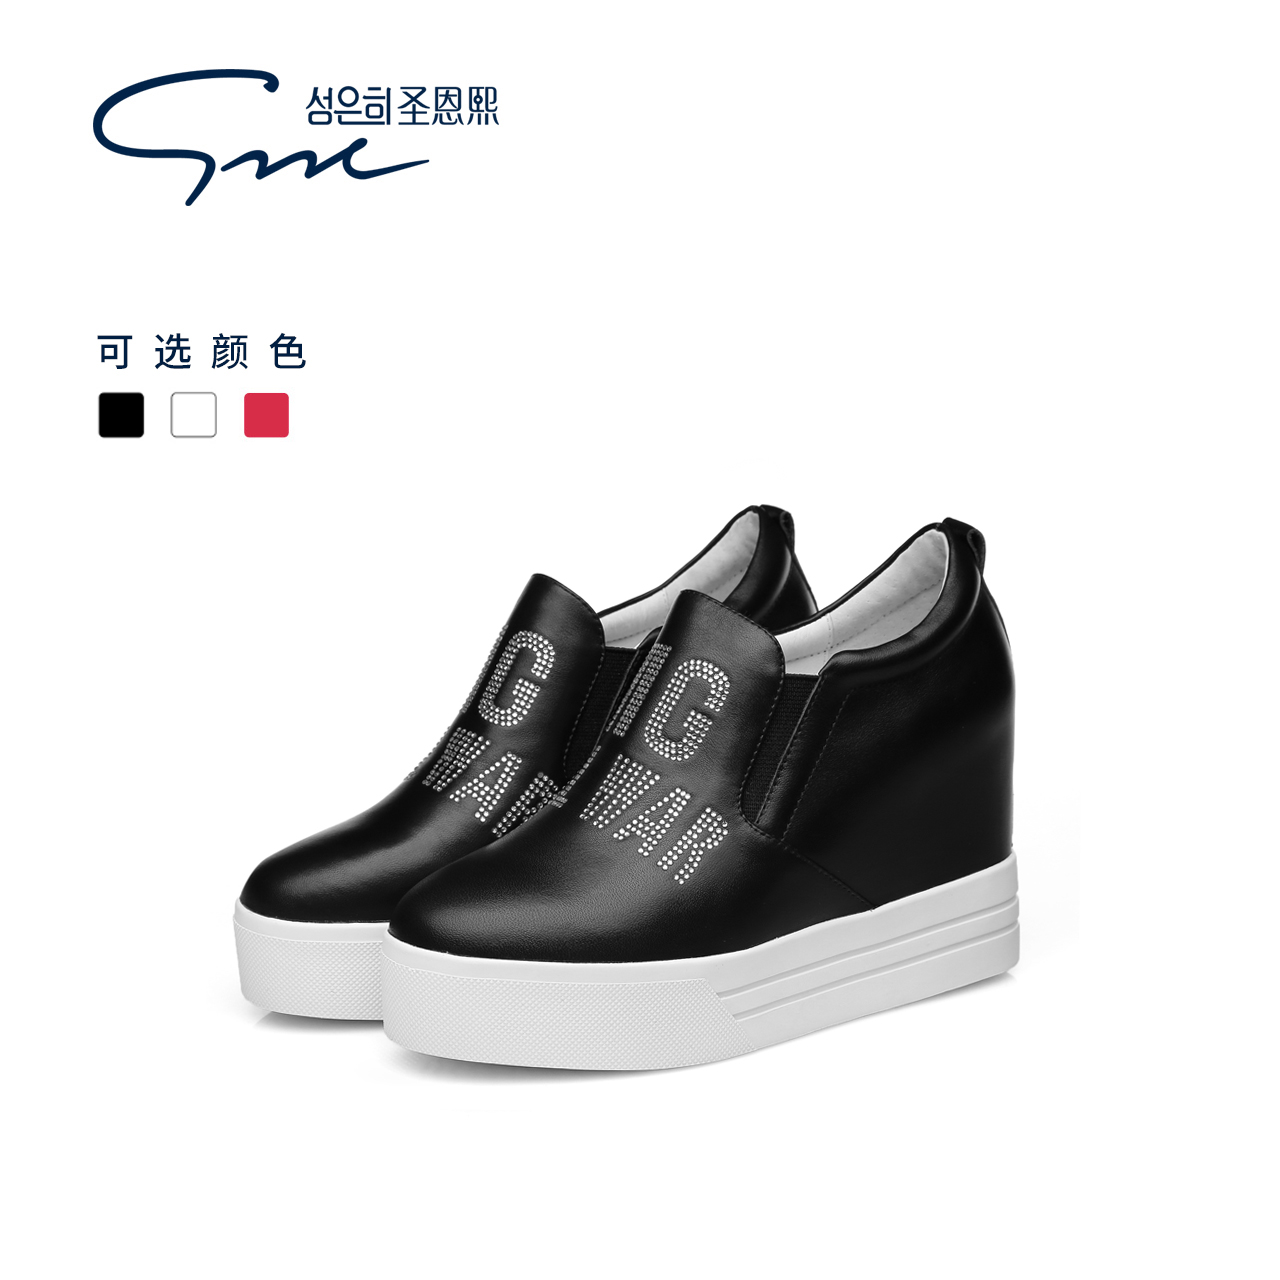 Summer hollowed-out, 8cm Korean version of women's shoes with one foot, breathable, recreational high-top shoes, small leather shoes